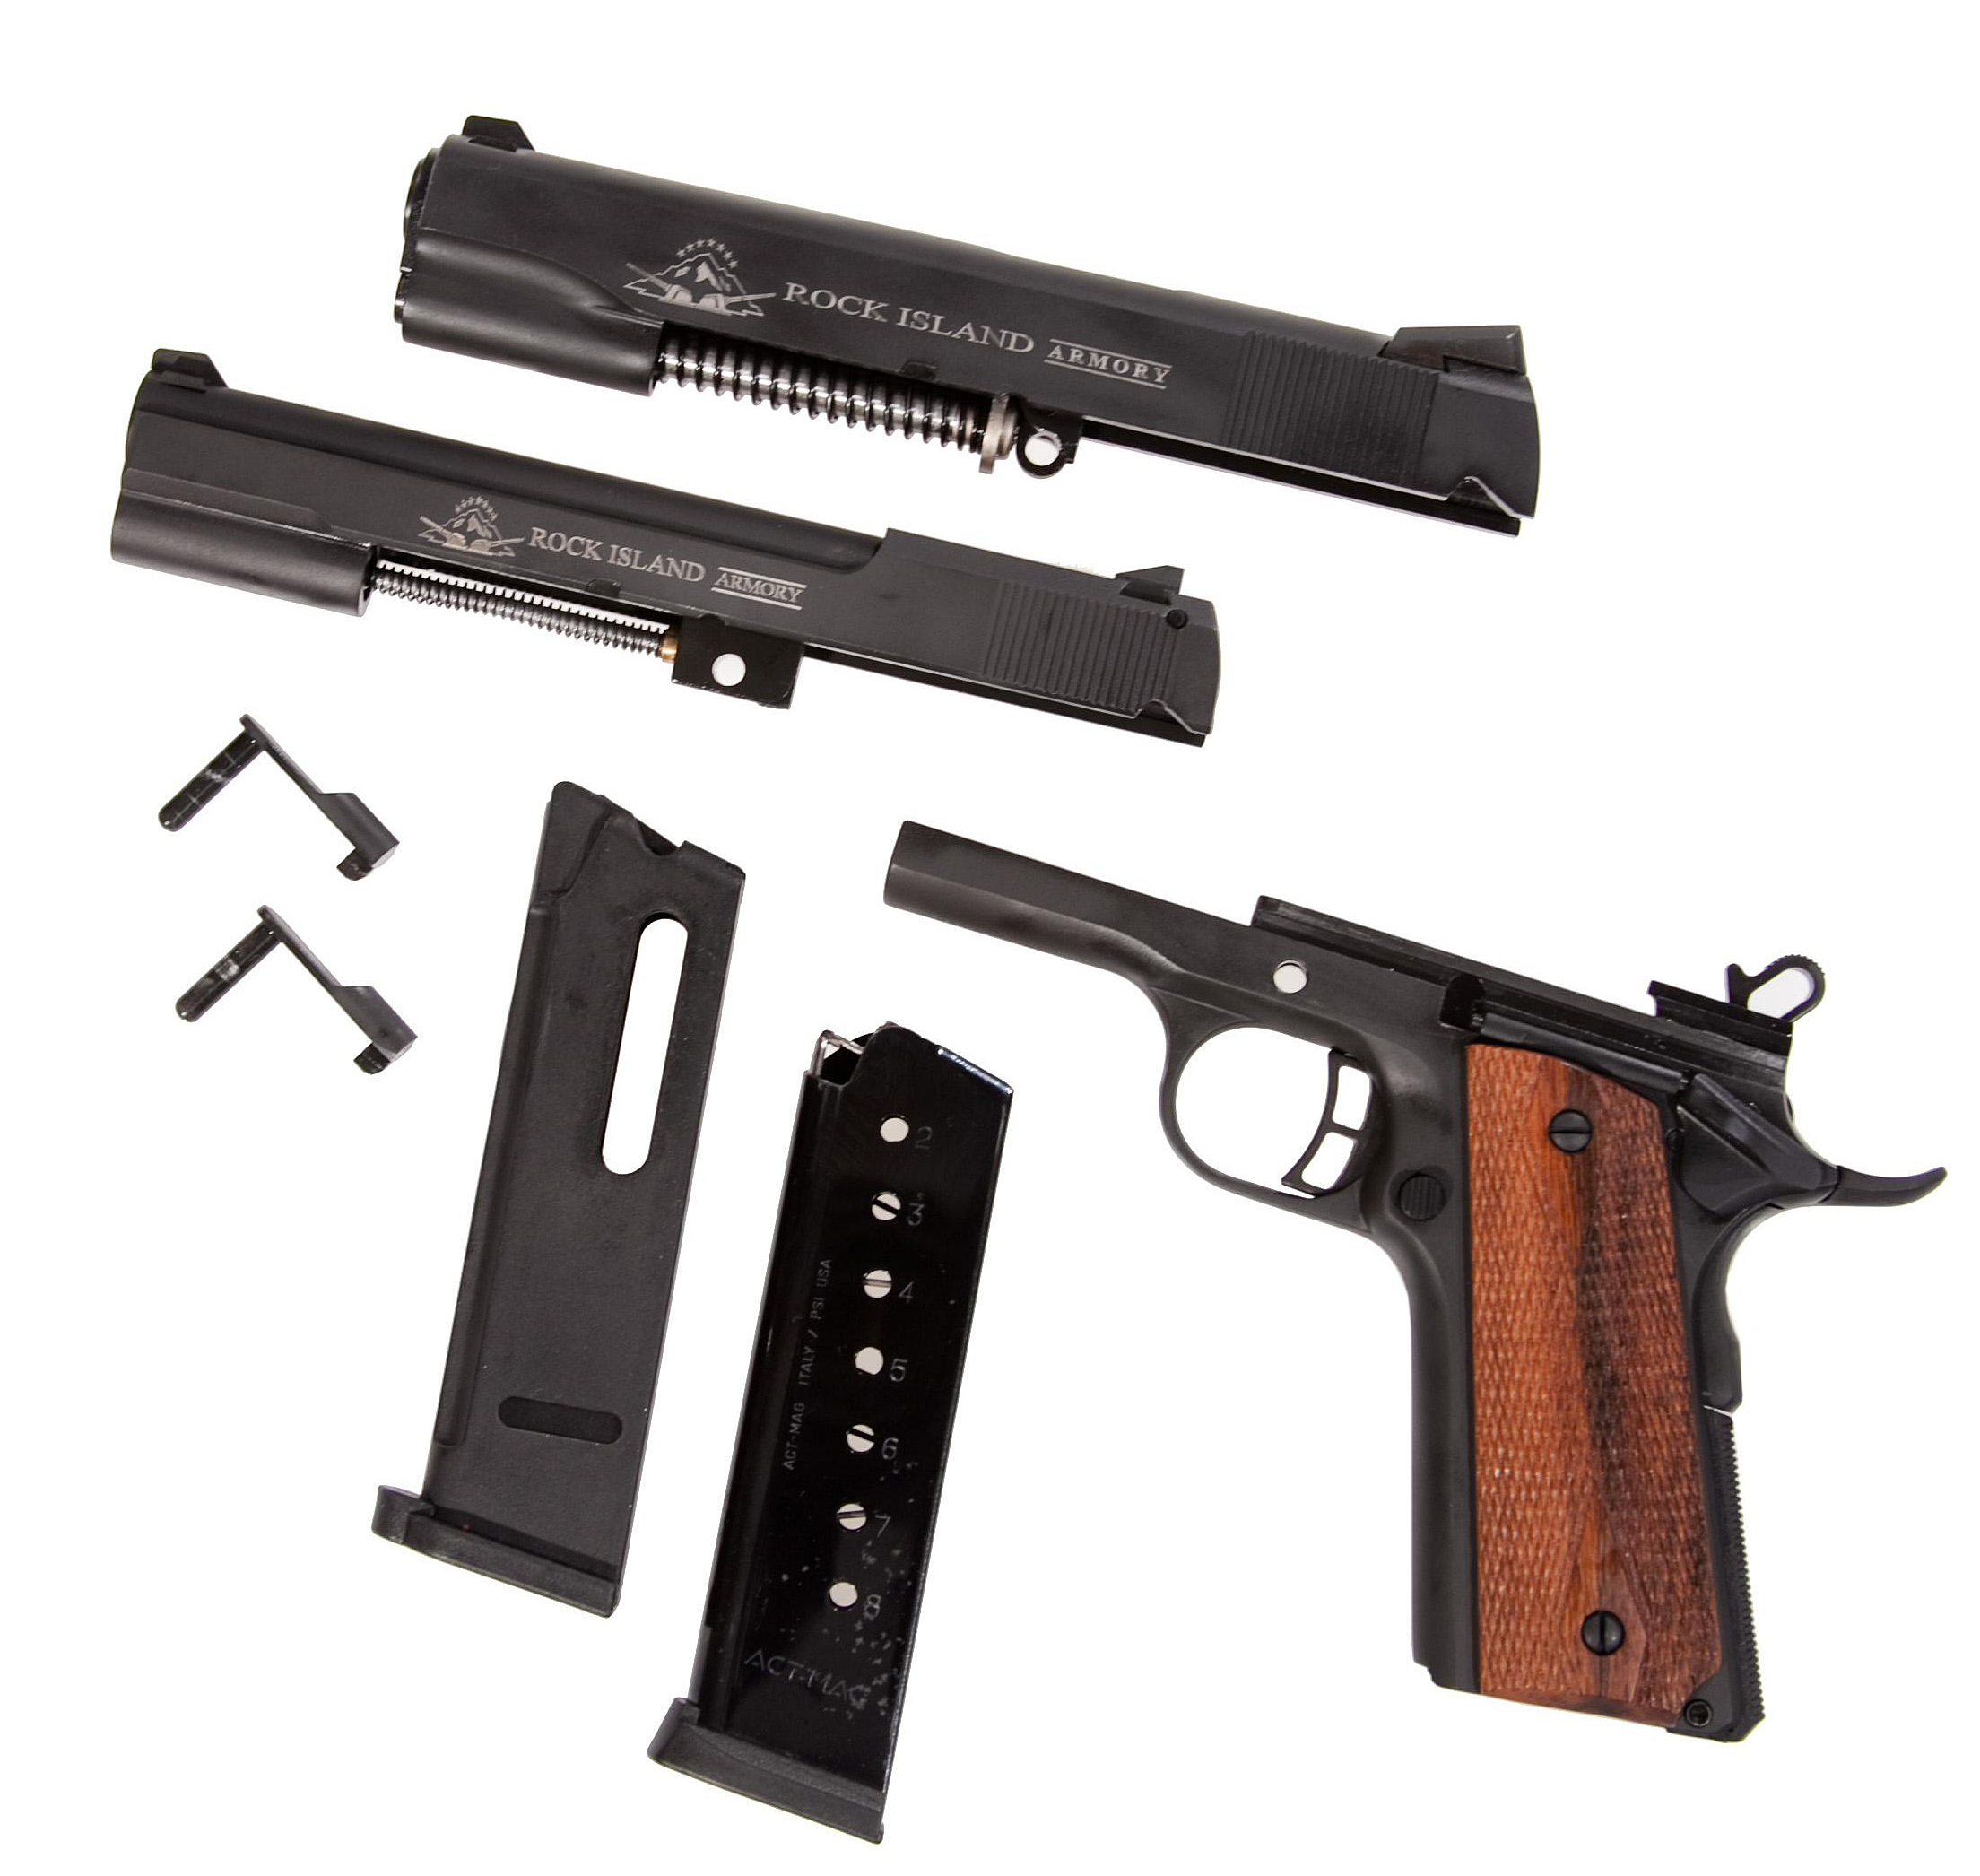 Solid as a Rock and Bang for Your Buck in Rock Island Armory